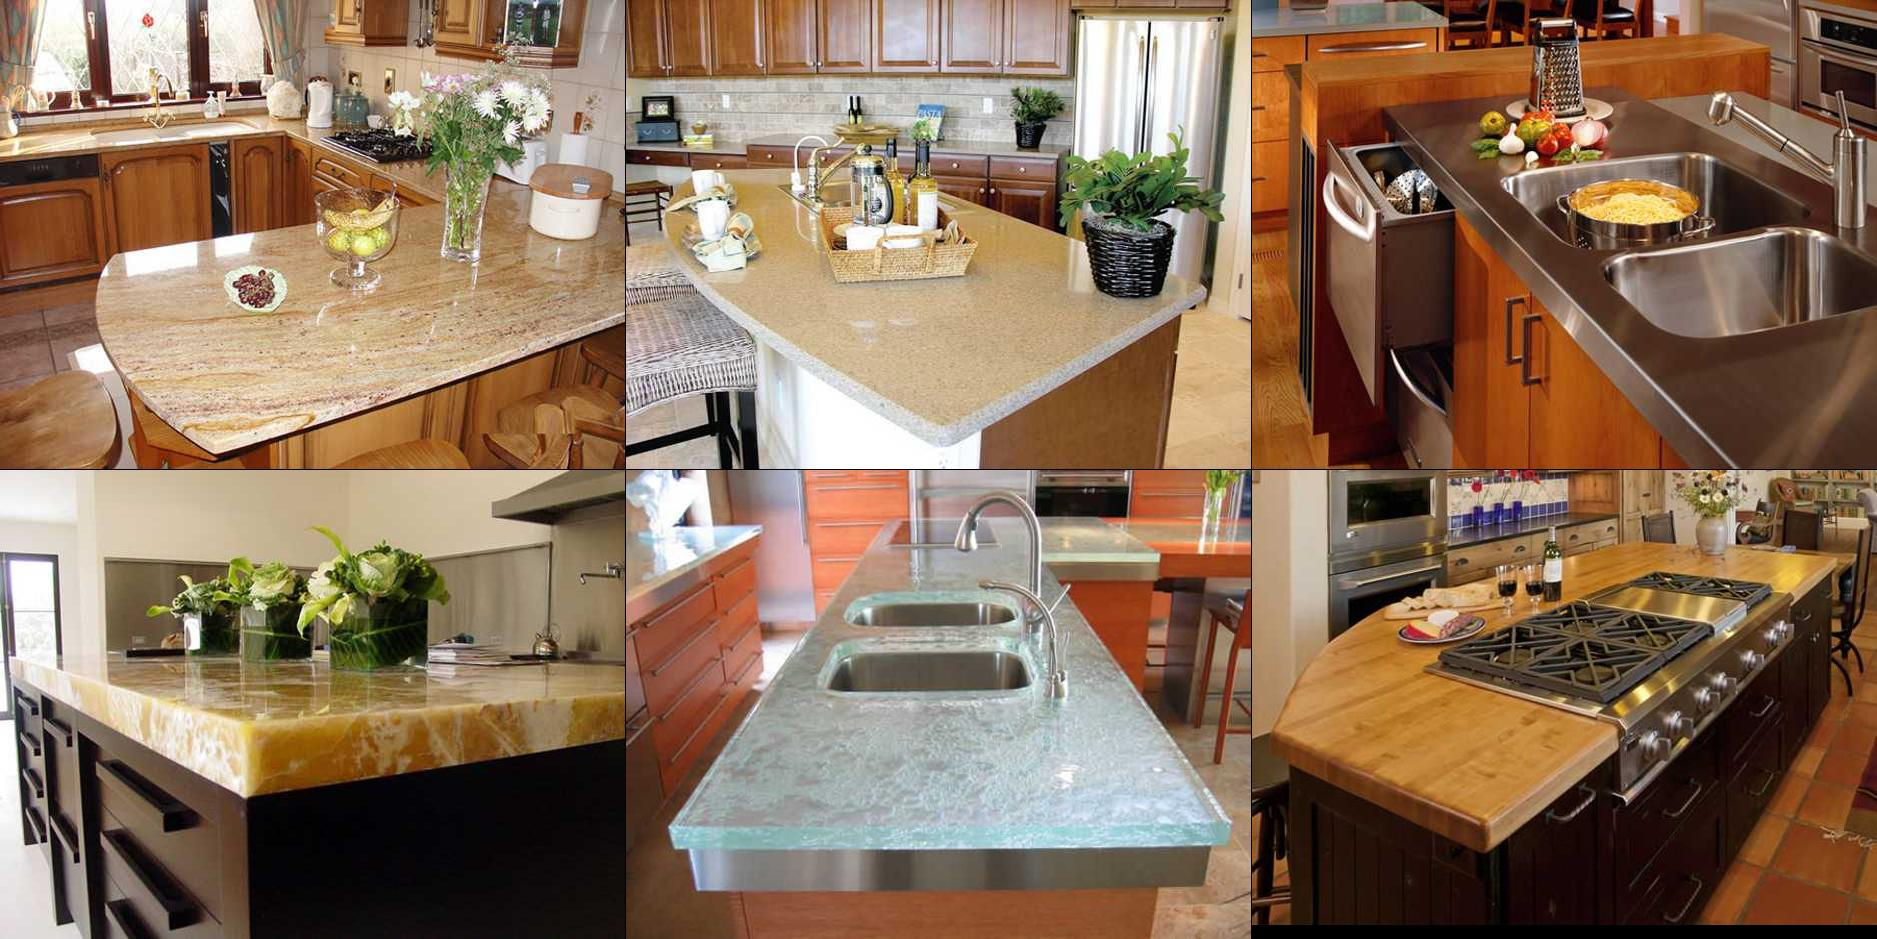 Modern kitchen countertop